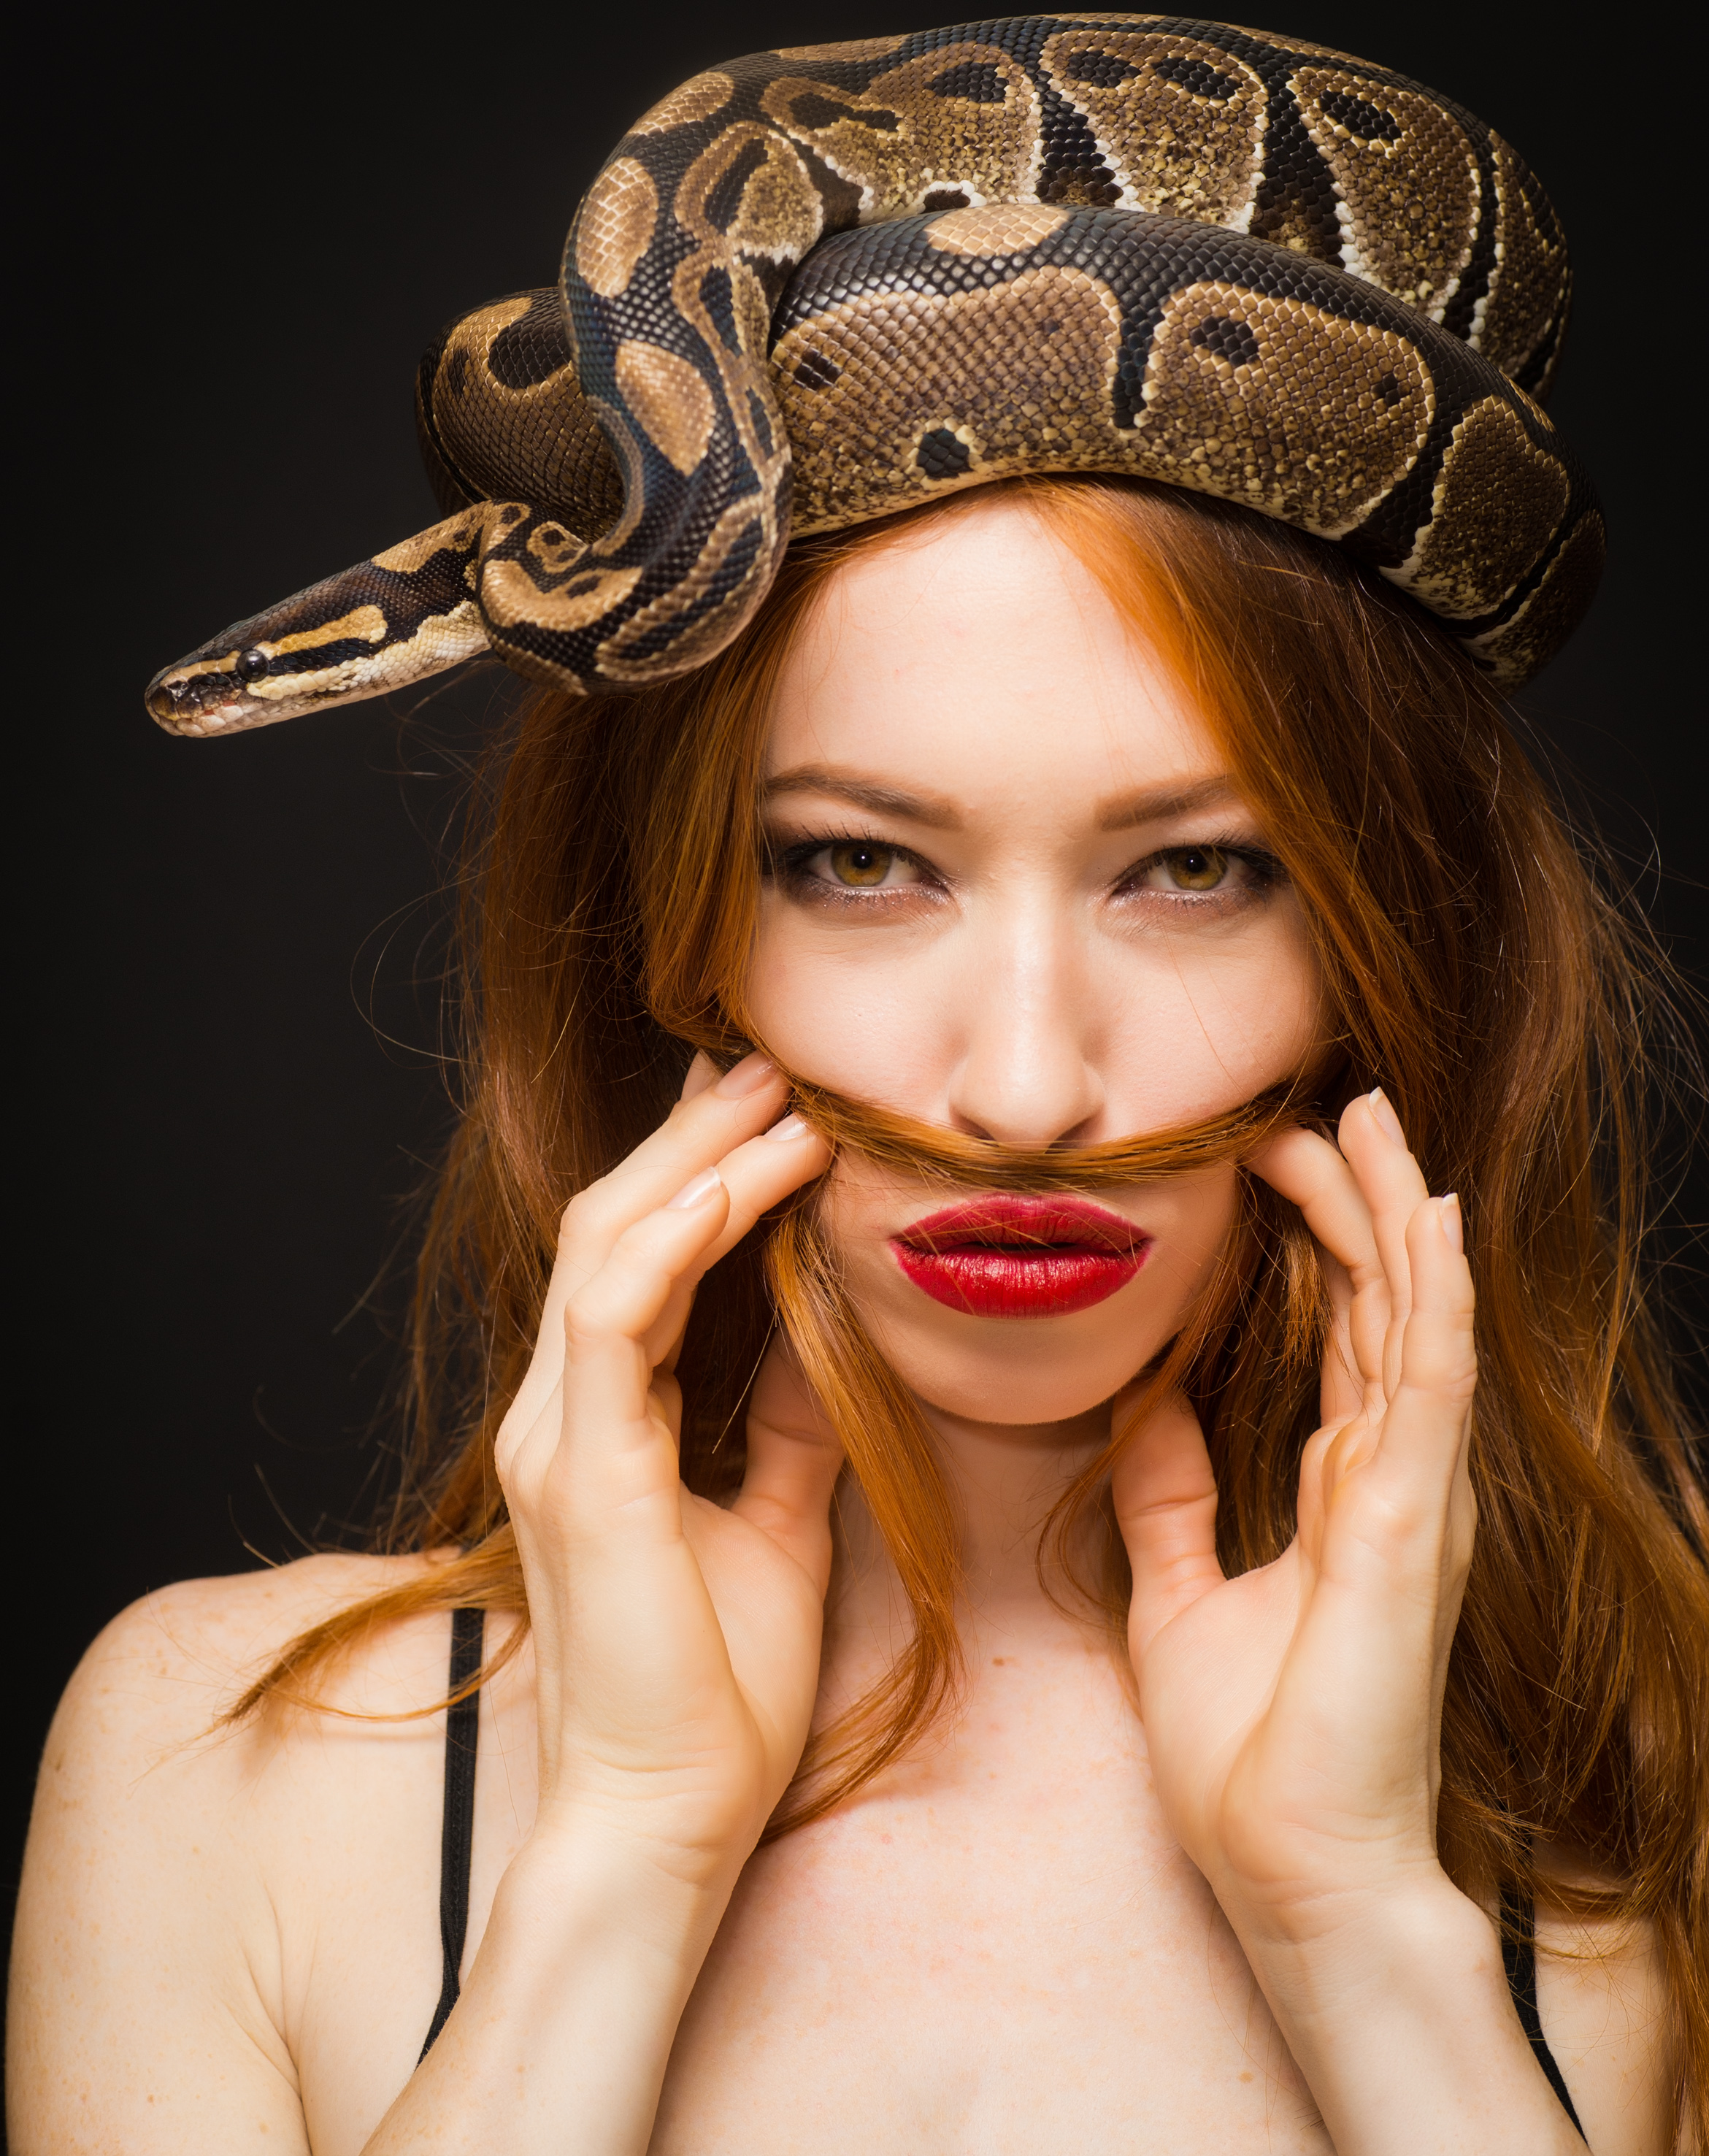 Kat Lilwall for Movember 2013